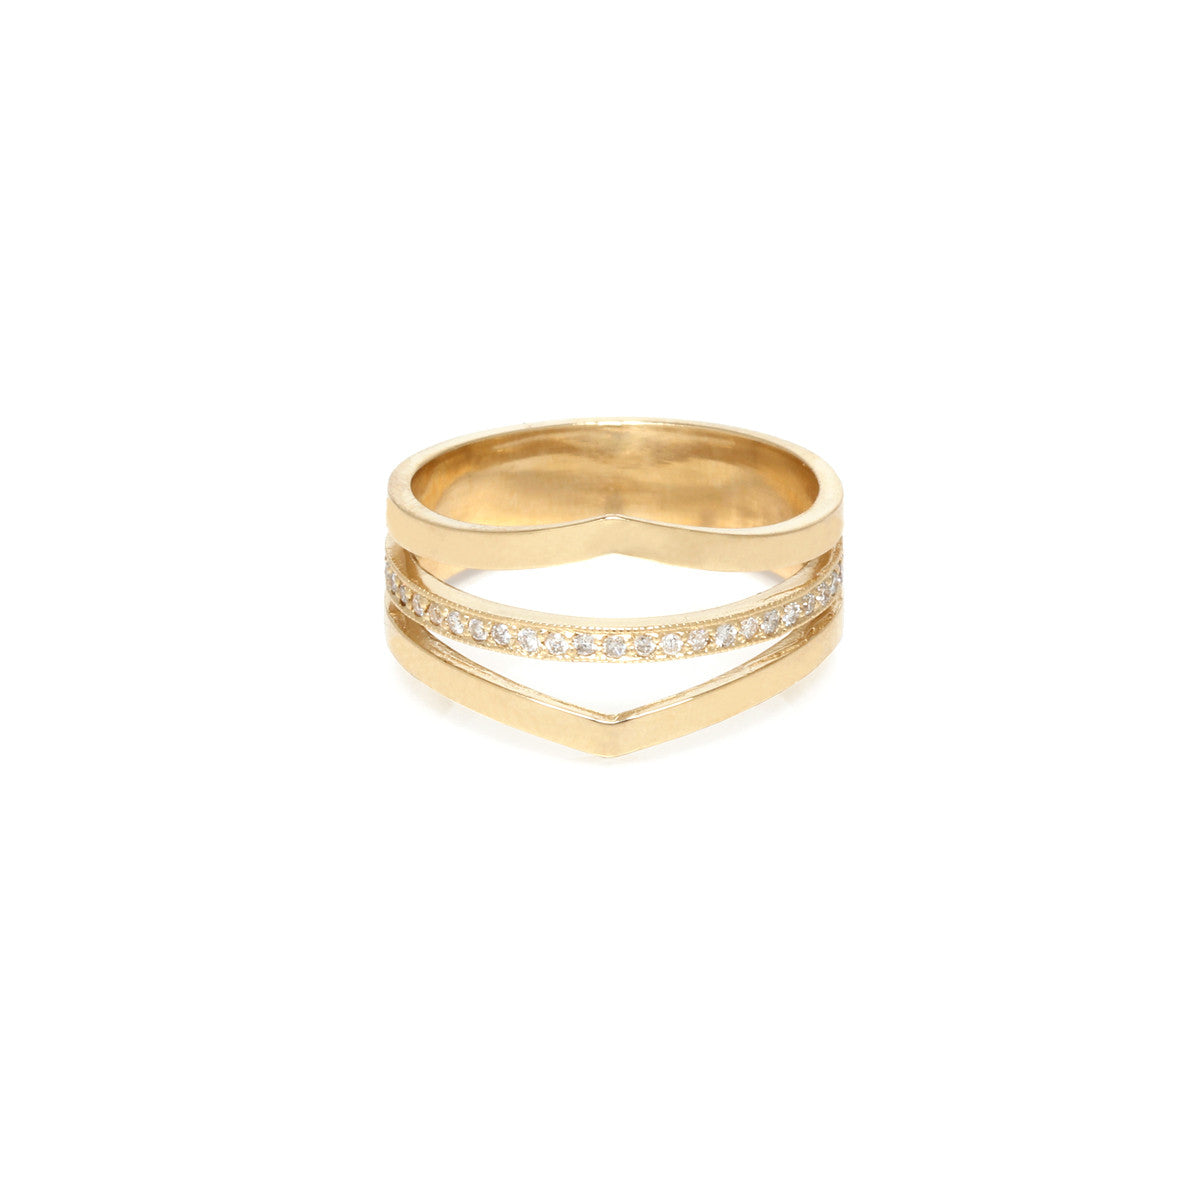 Zoë Chicco 14kt Yellow Gold 3 Band White Diamond Pave Ring